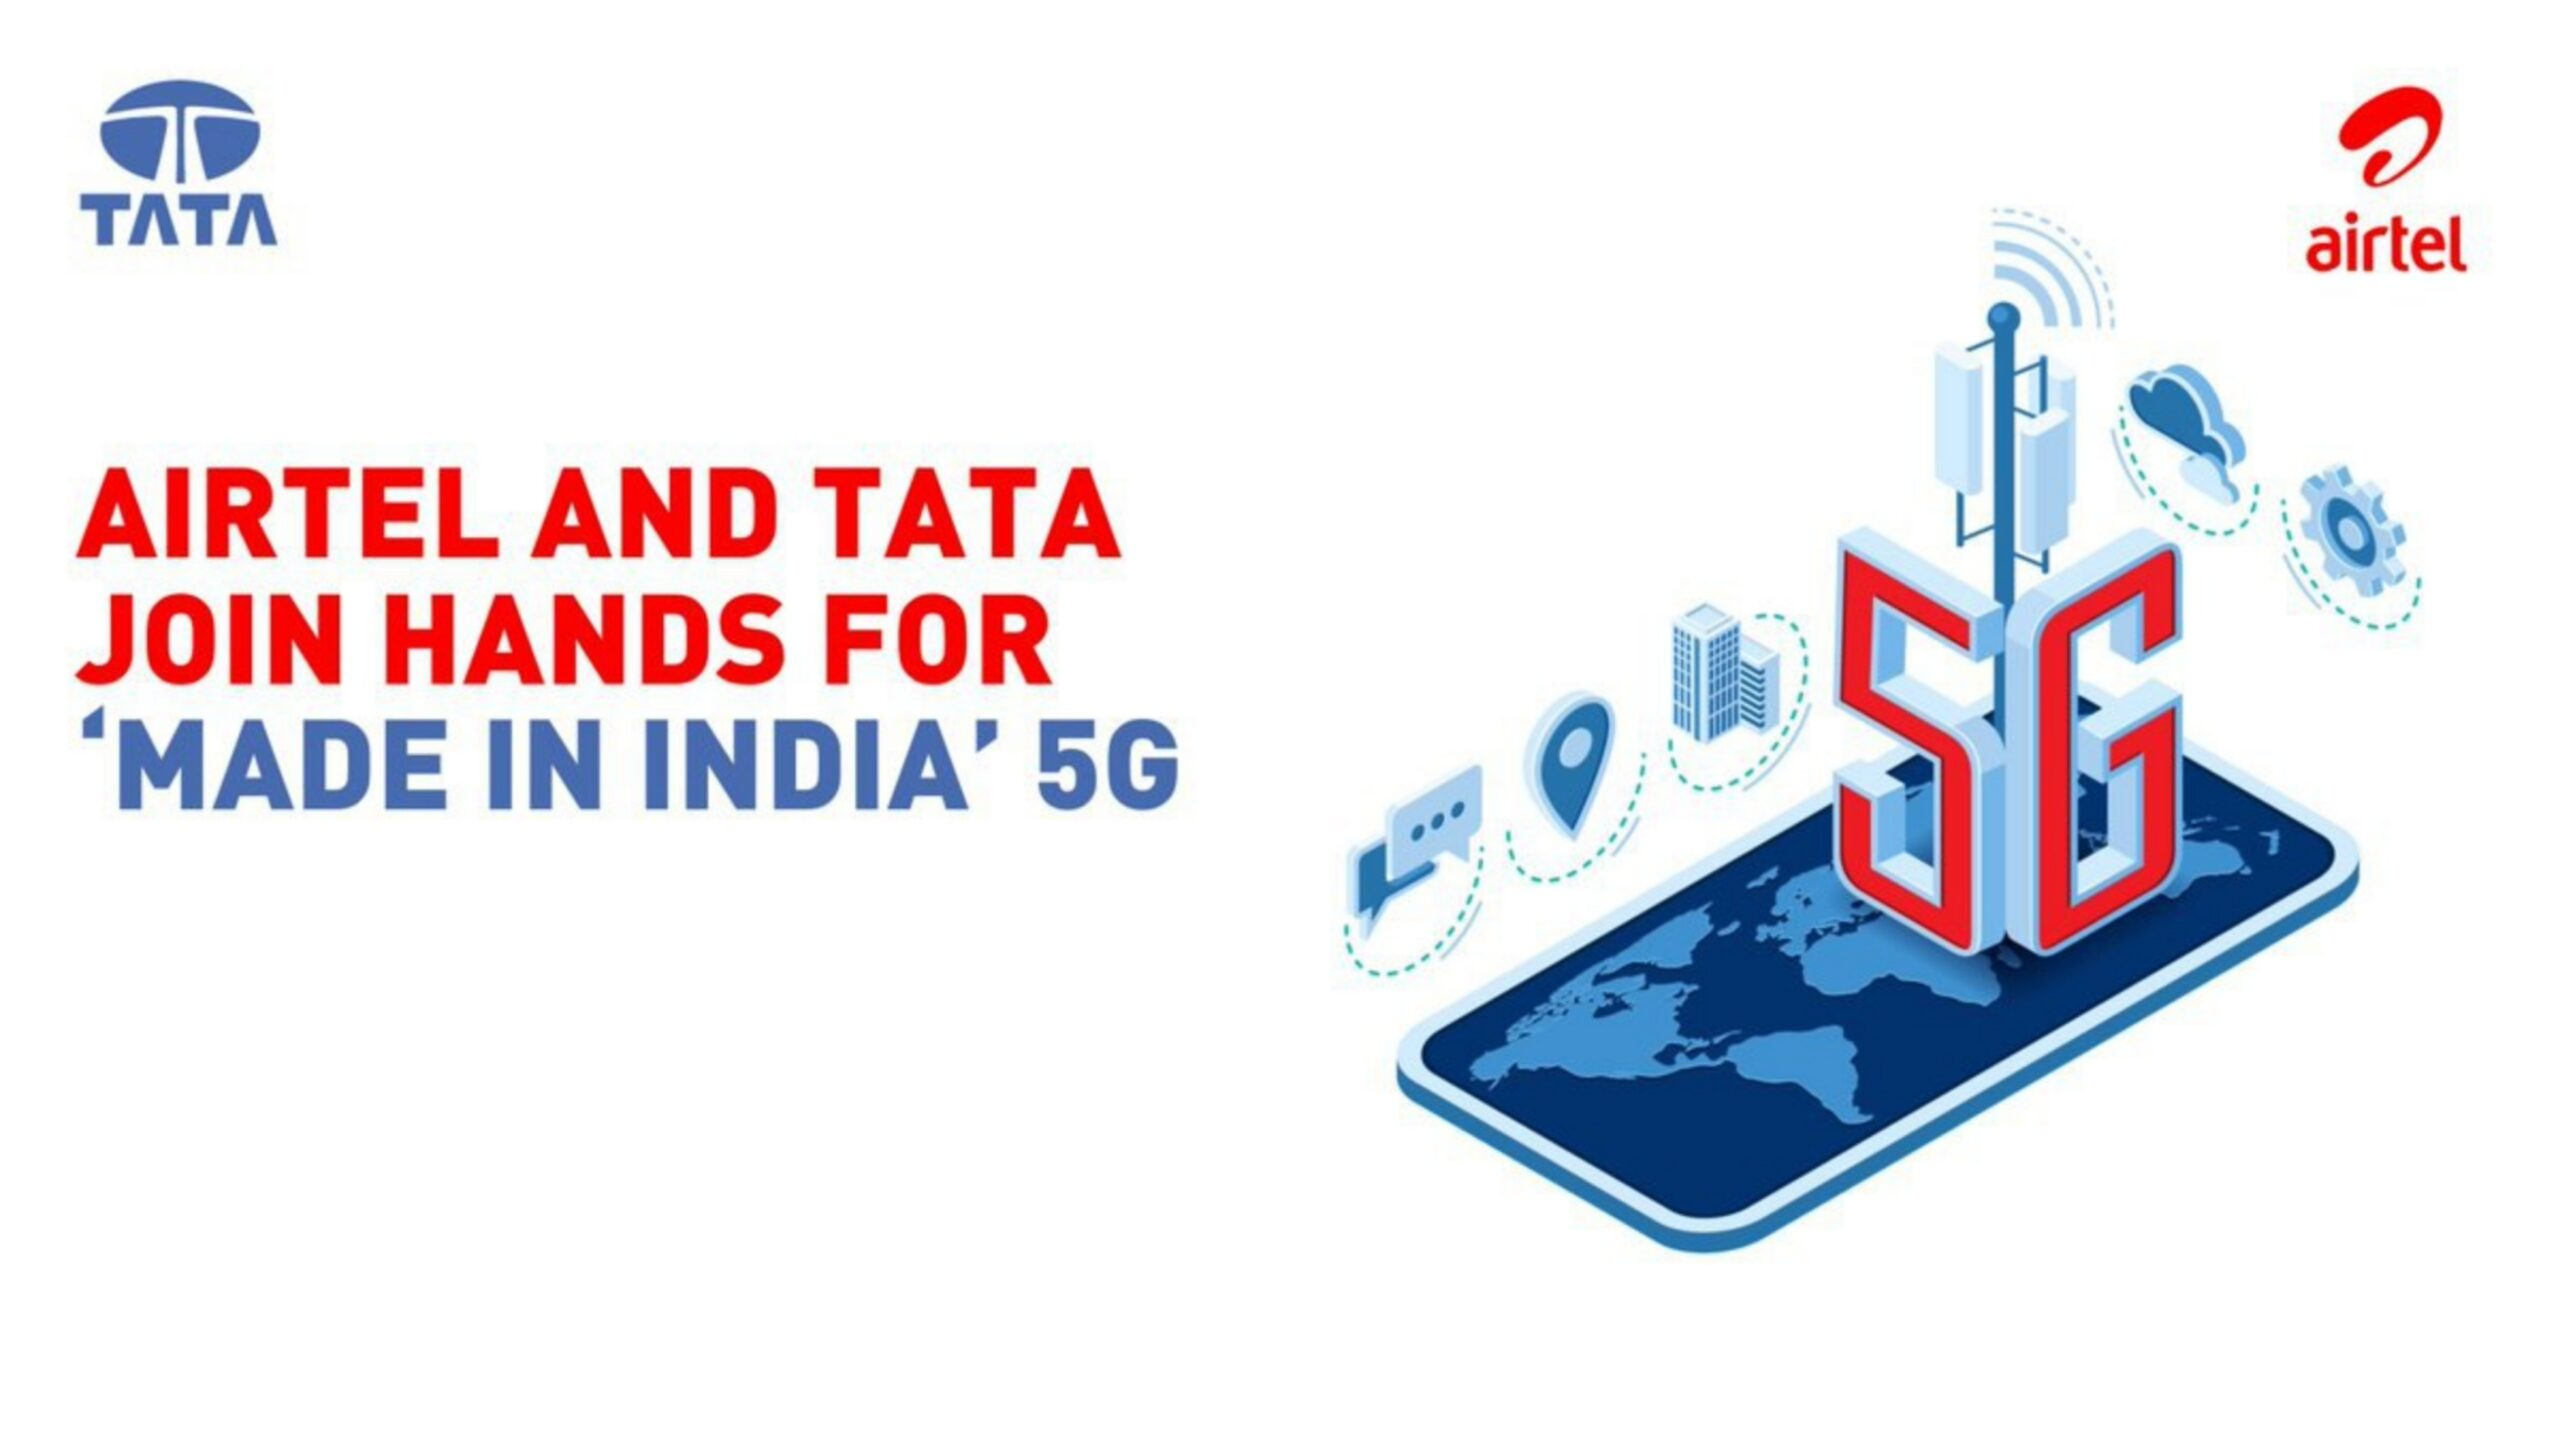 Airtel Made in India 5G scaled